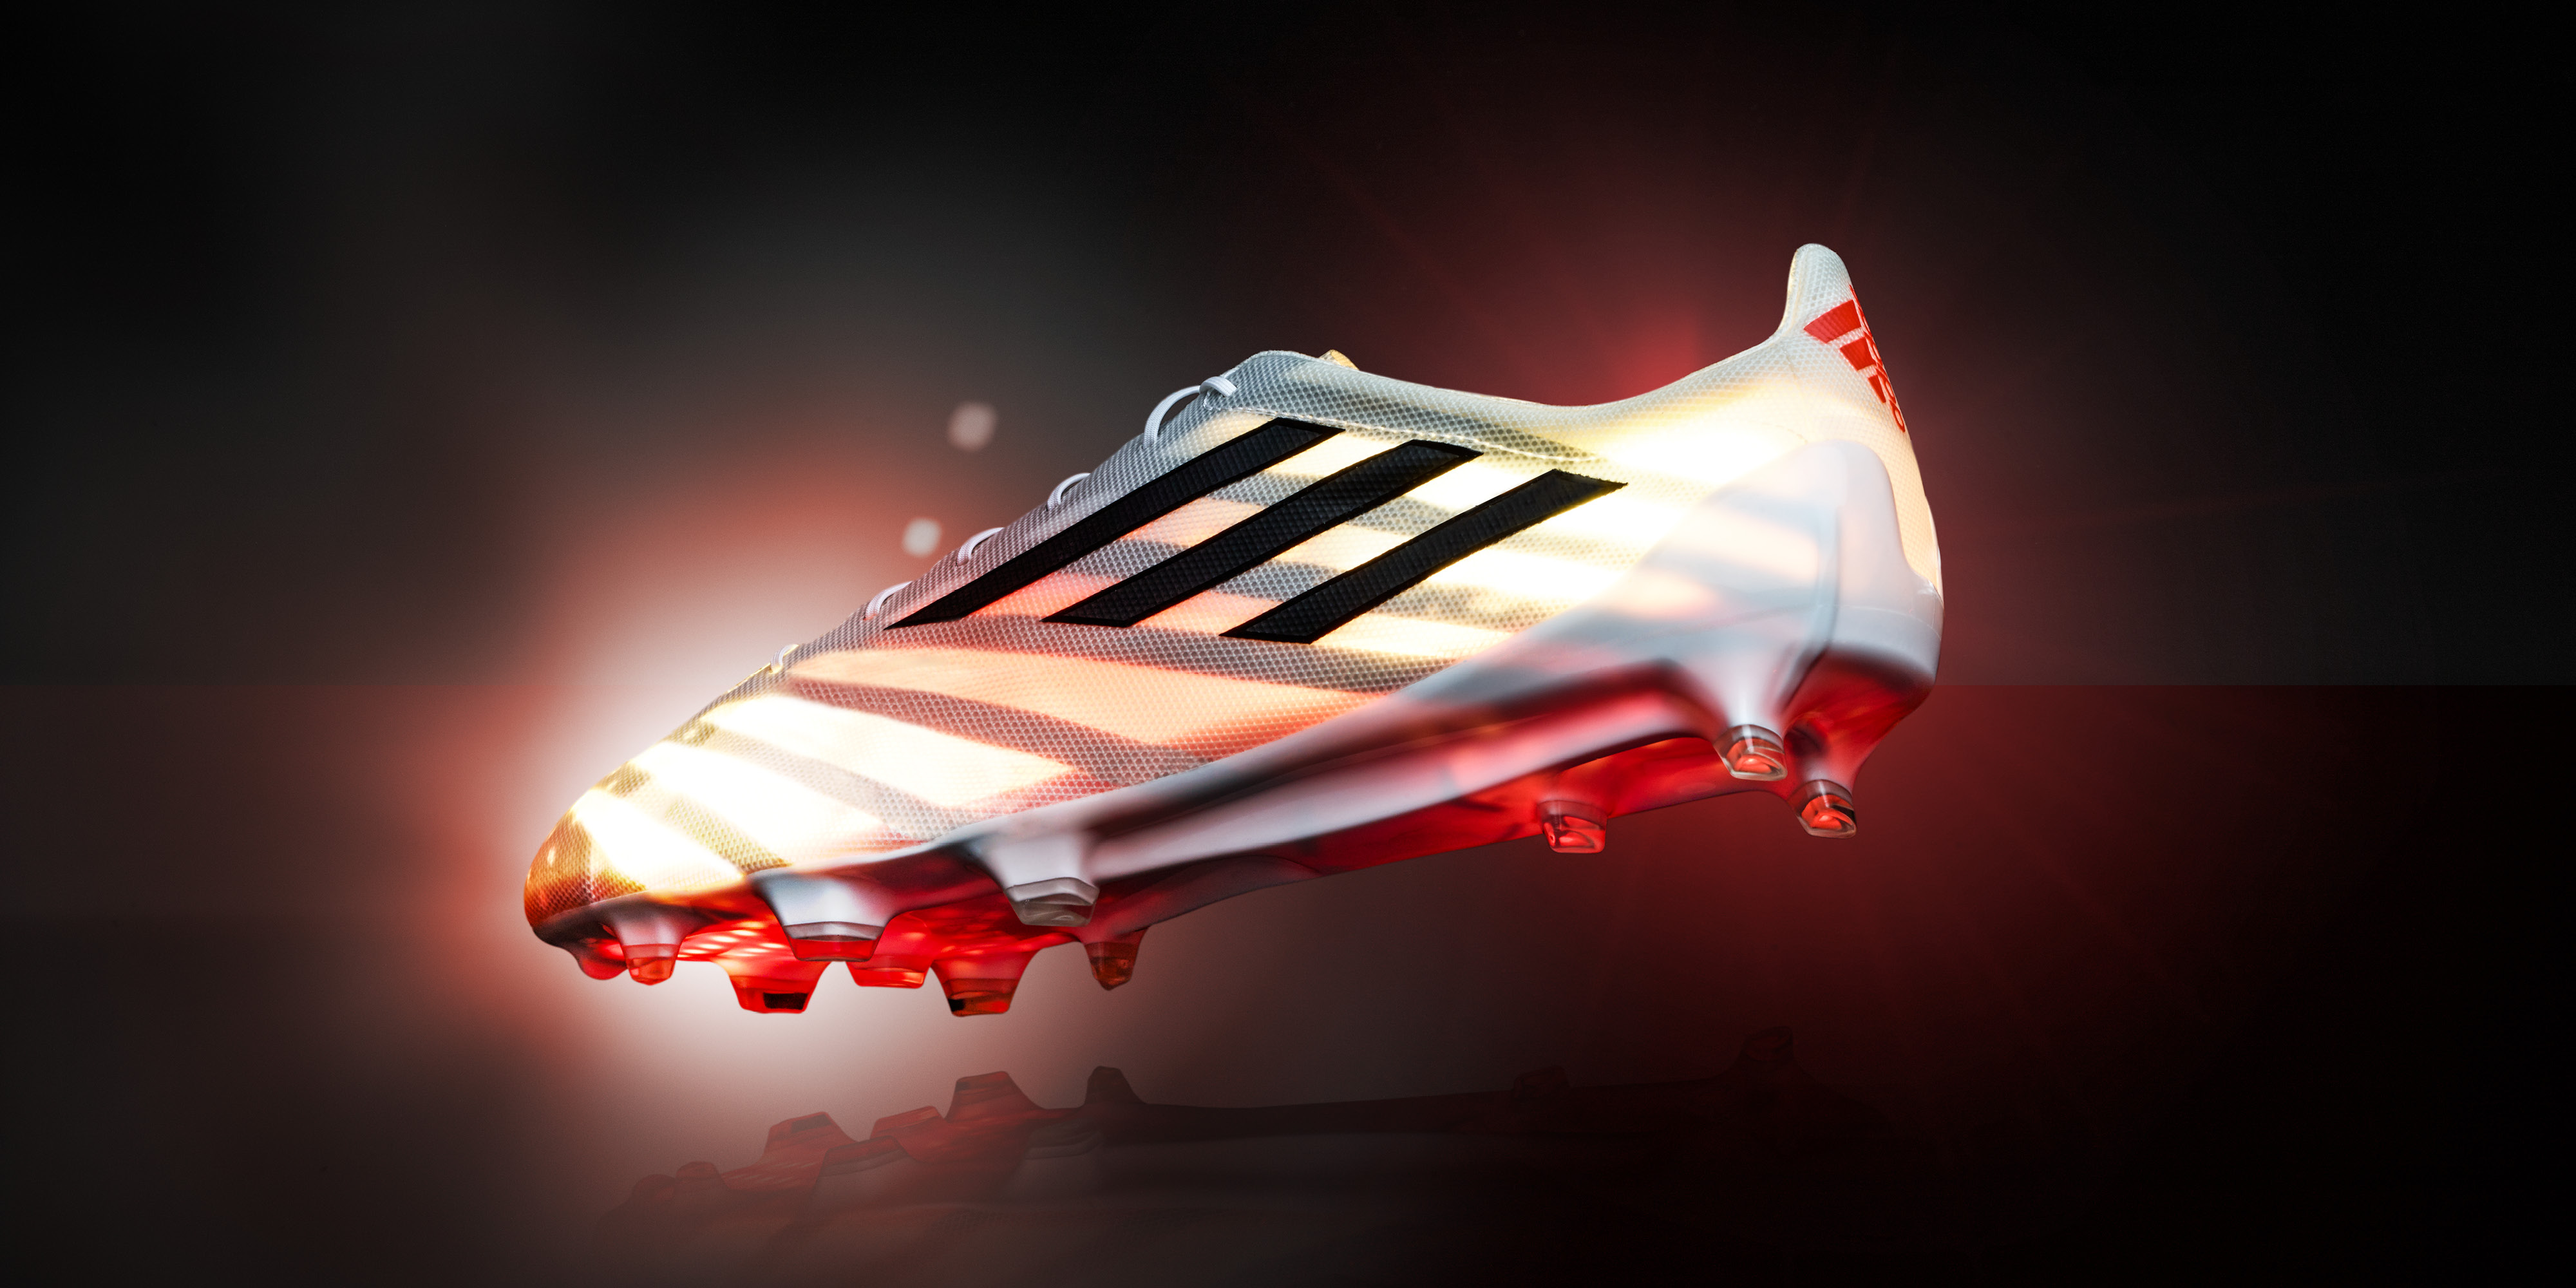 77d9ecf7b adidas launch the limited edition adizero 99g – the lightest football boot  ever